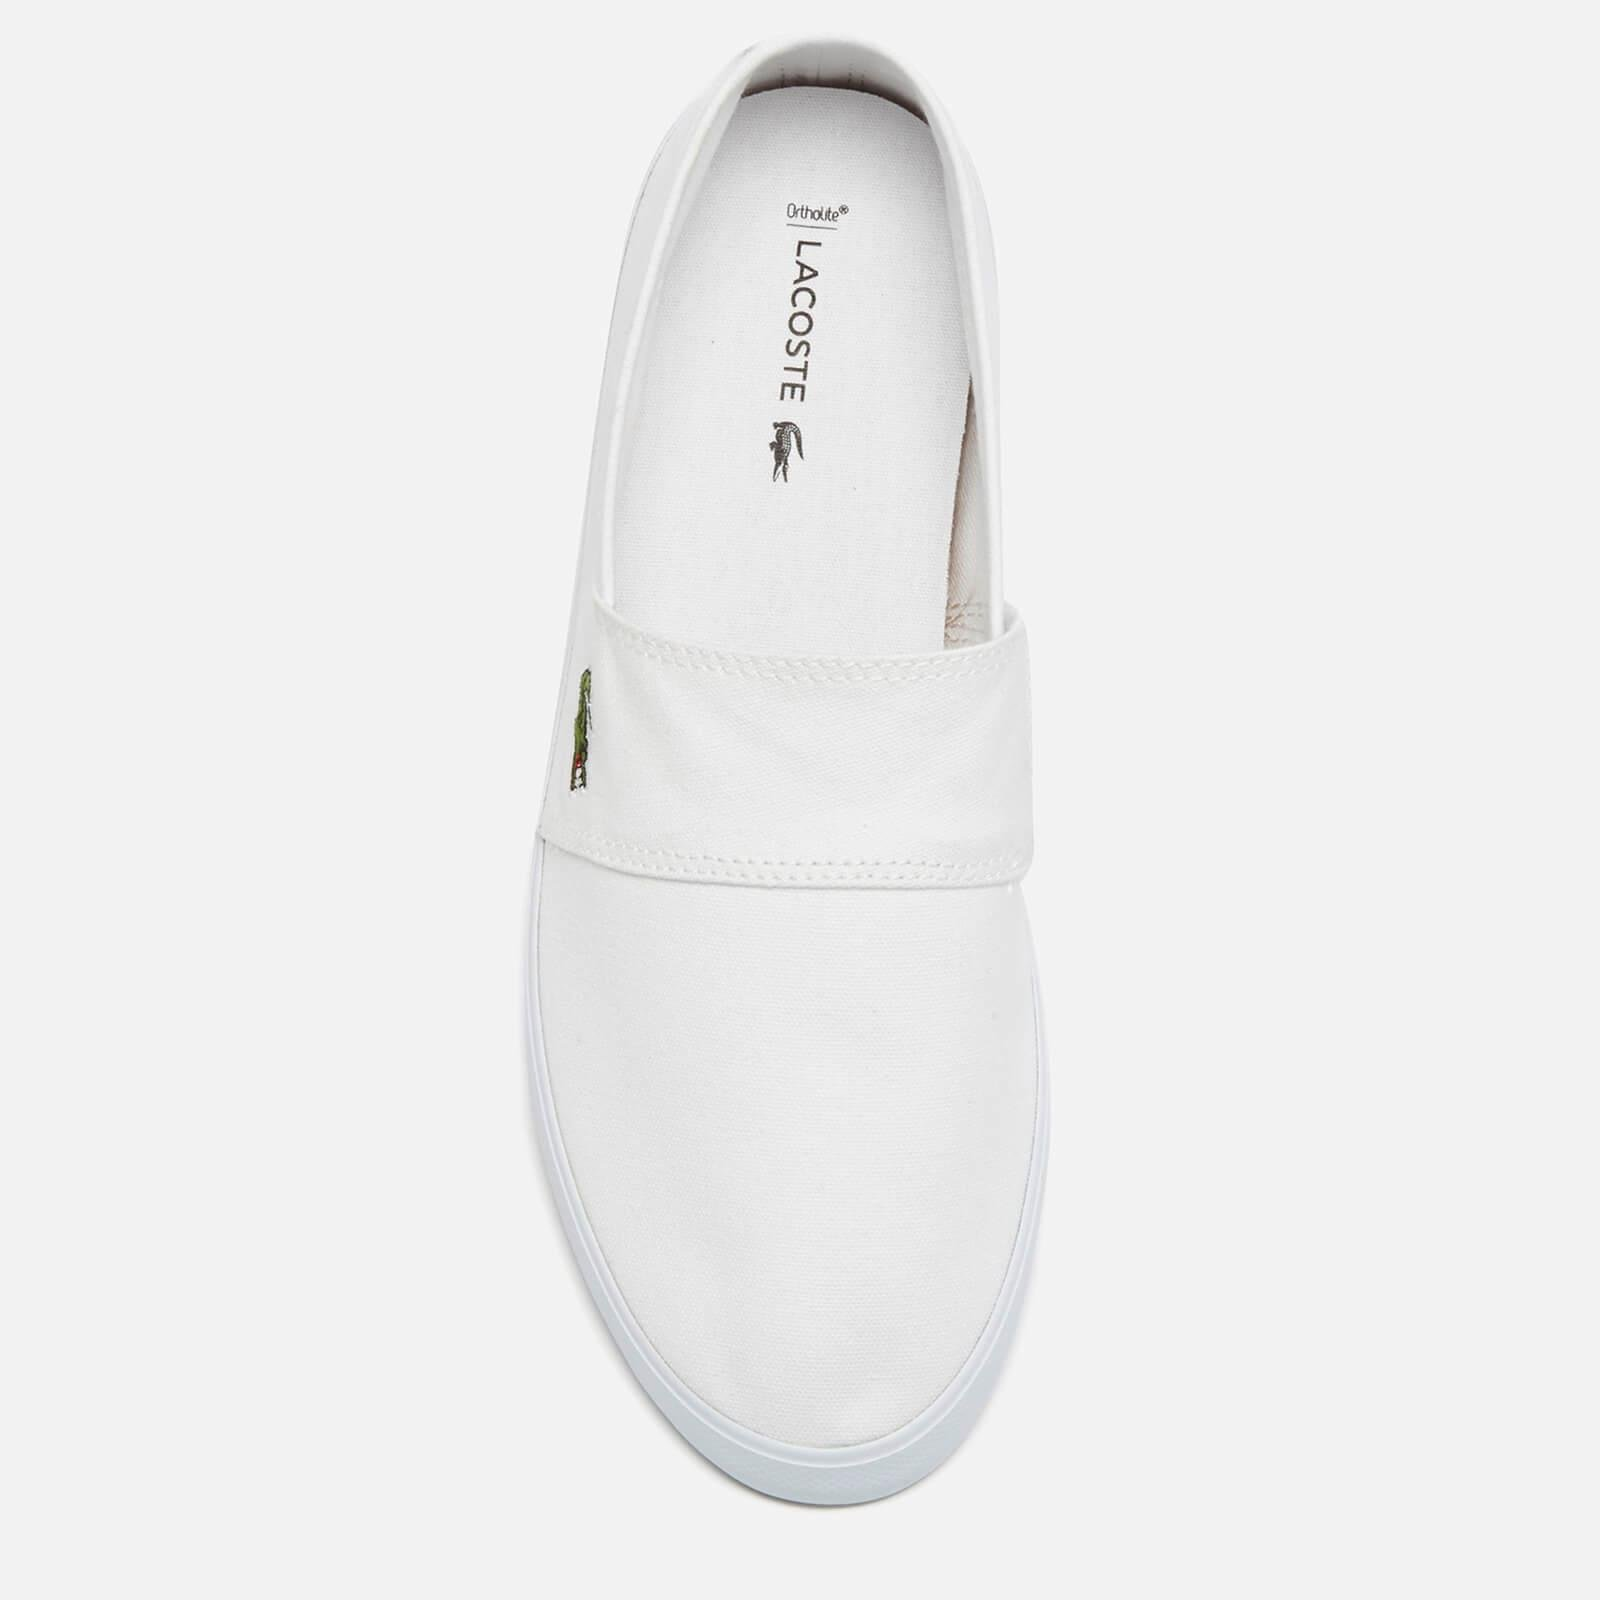 a191e56dd Lacoste - White Marice Bl 2 Canvas Slip-on Pumps for Men - Lyst. View  fullscreen